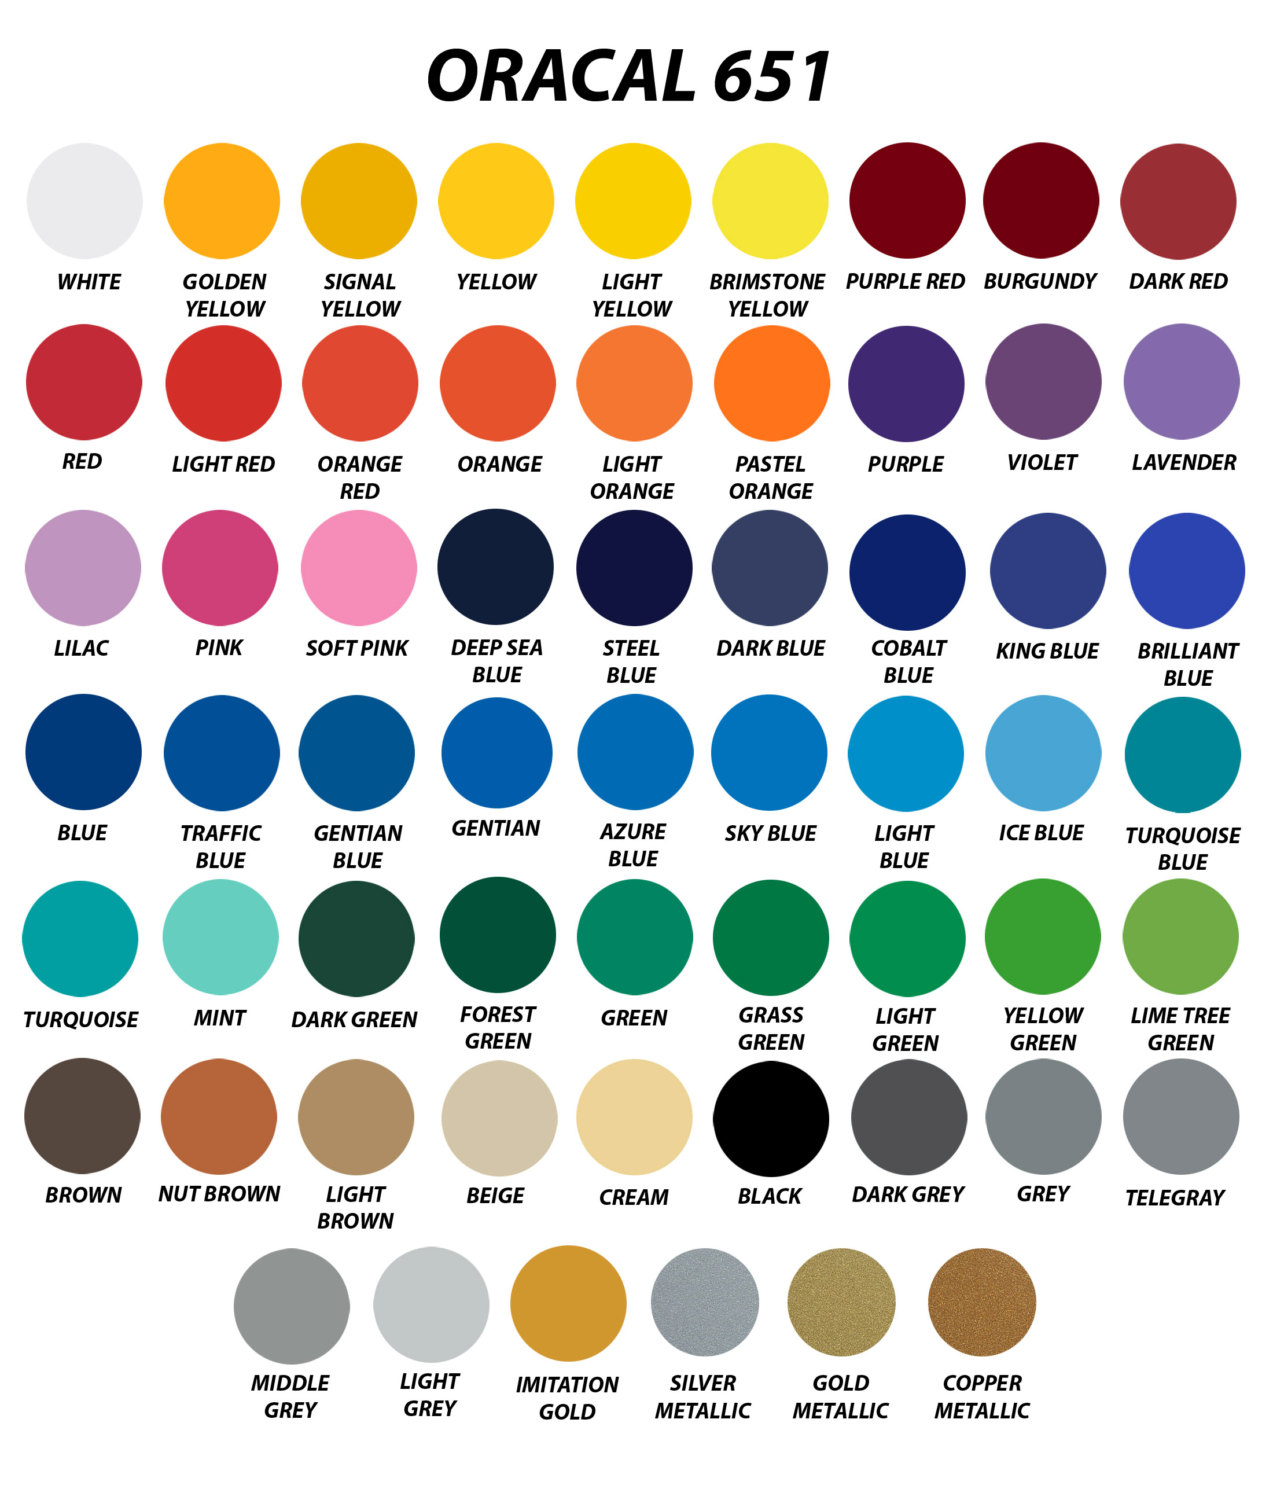 oracal 651 colors